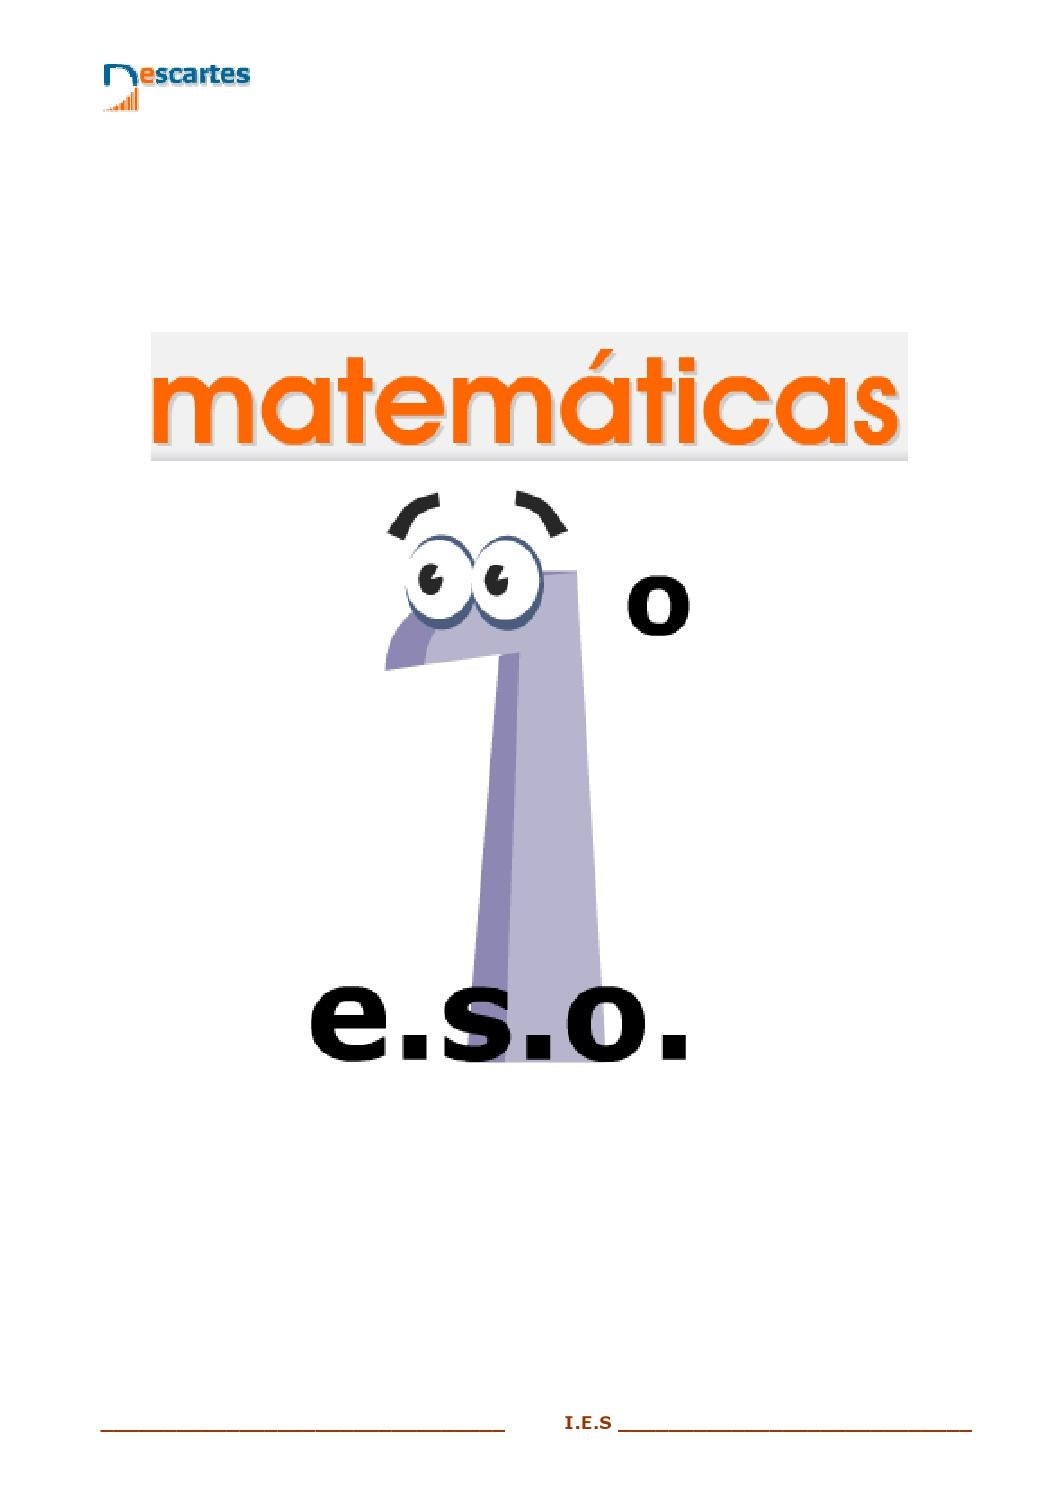 Suma Y Resta De Raices Cuadradas Libro De Texto Matematicas 1 Eso By Red Educativa Digital